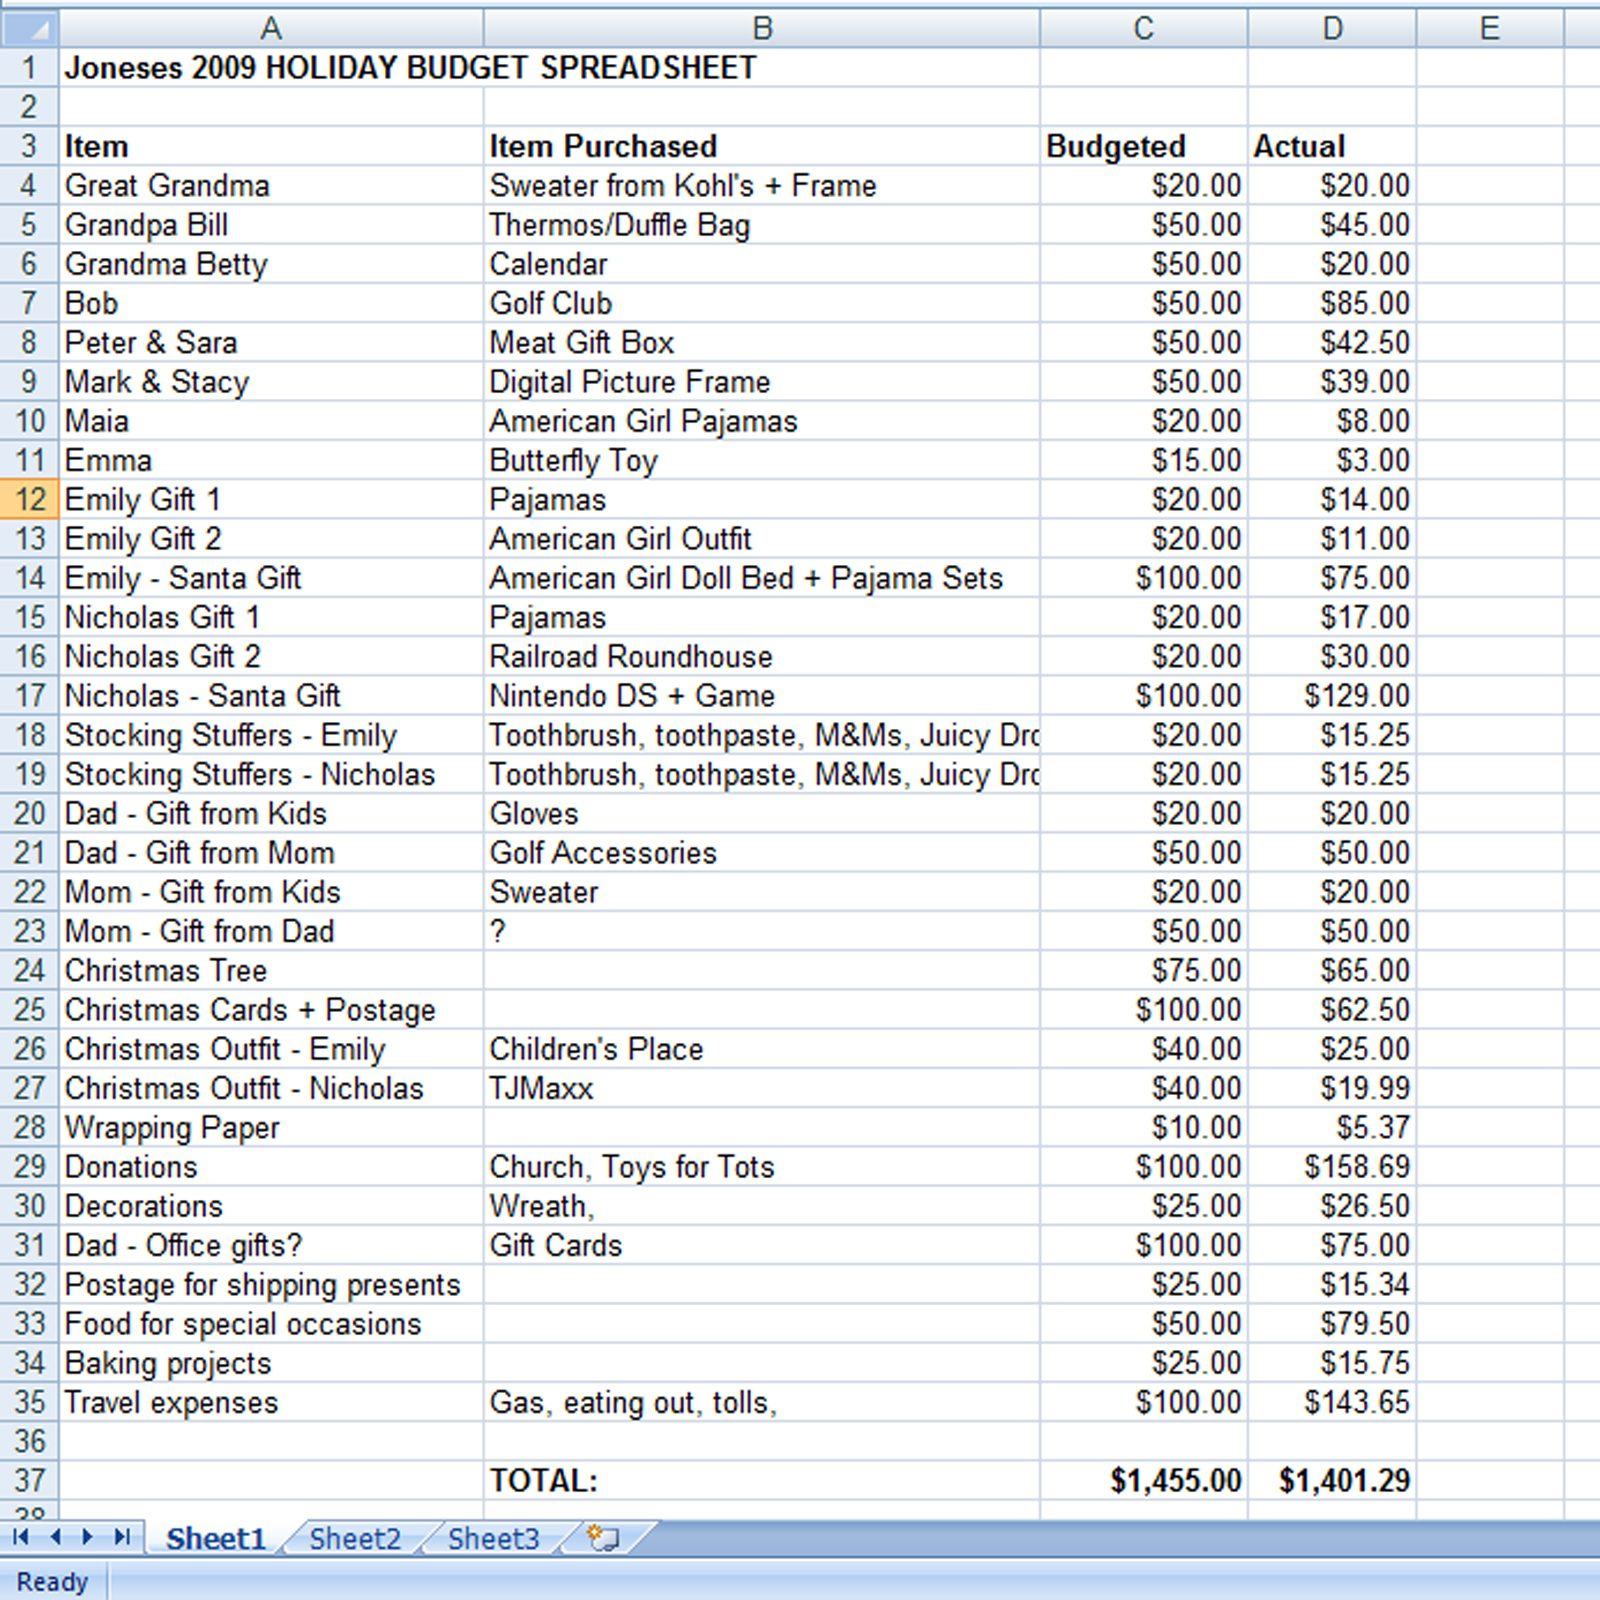 Keeping Track Of Expenses Spreadsheet Inside Keep Track Of Spendingdsheet Lovely Excel Sheet To Expenses